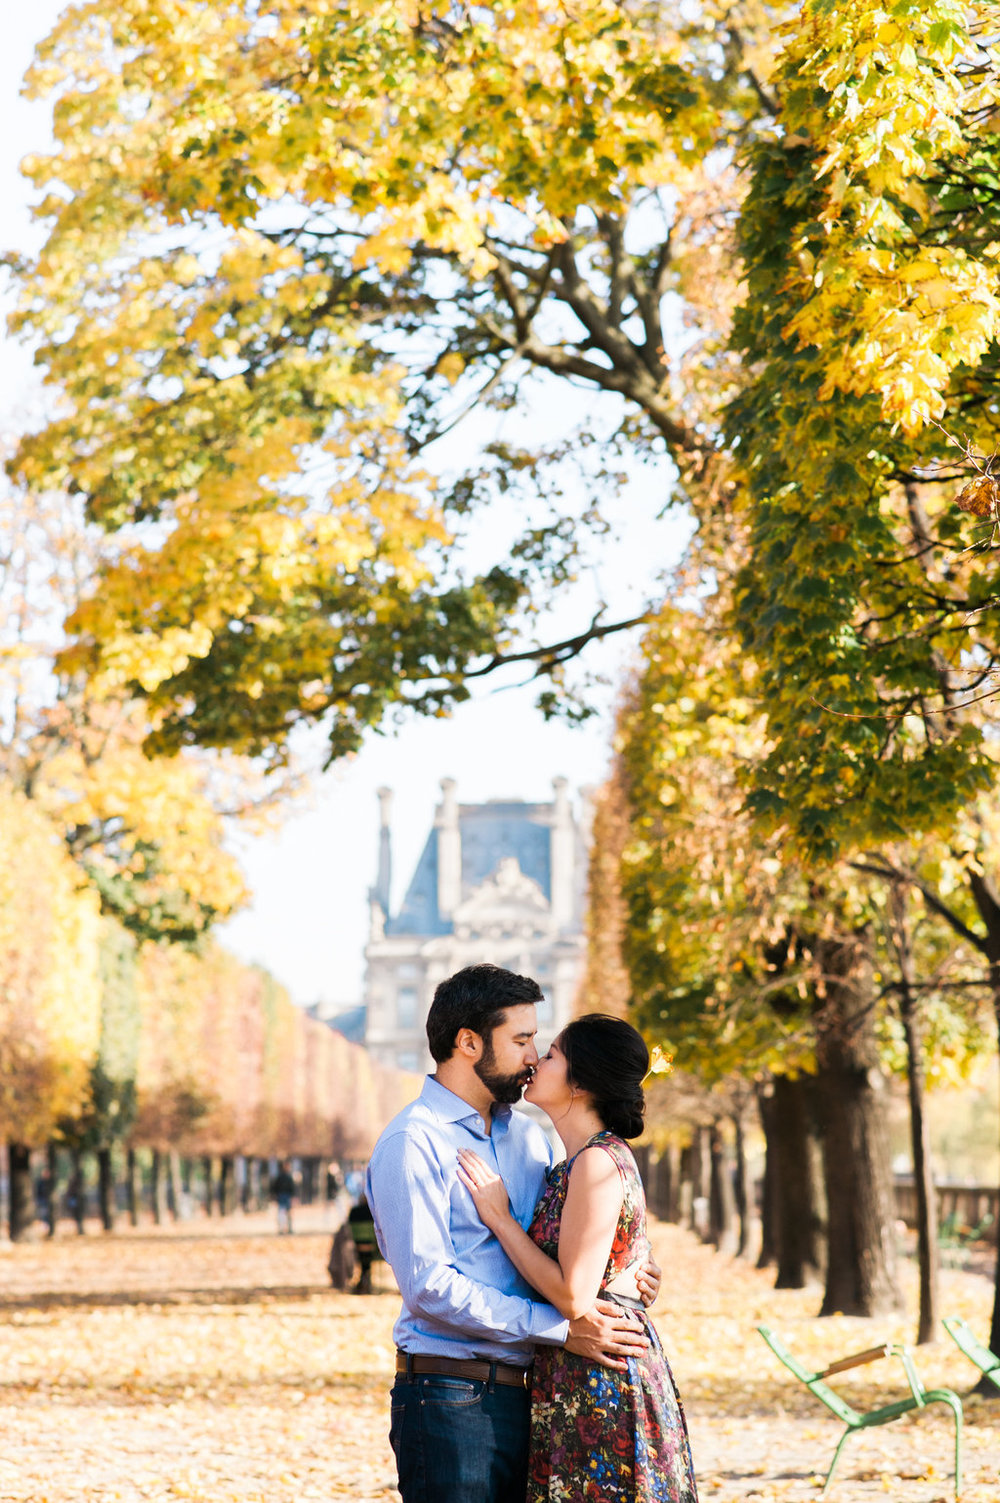 parisian_autumn_engagement_tuileries_garden (57).jpg